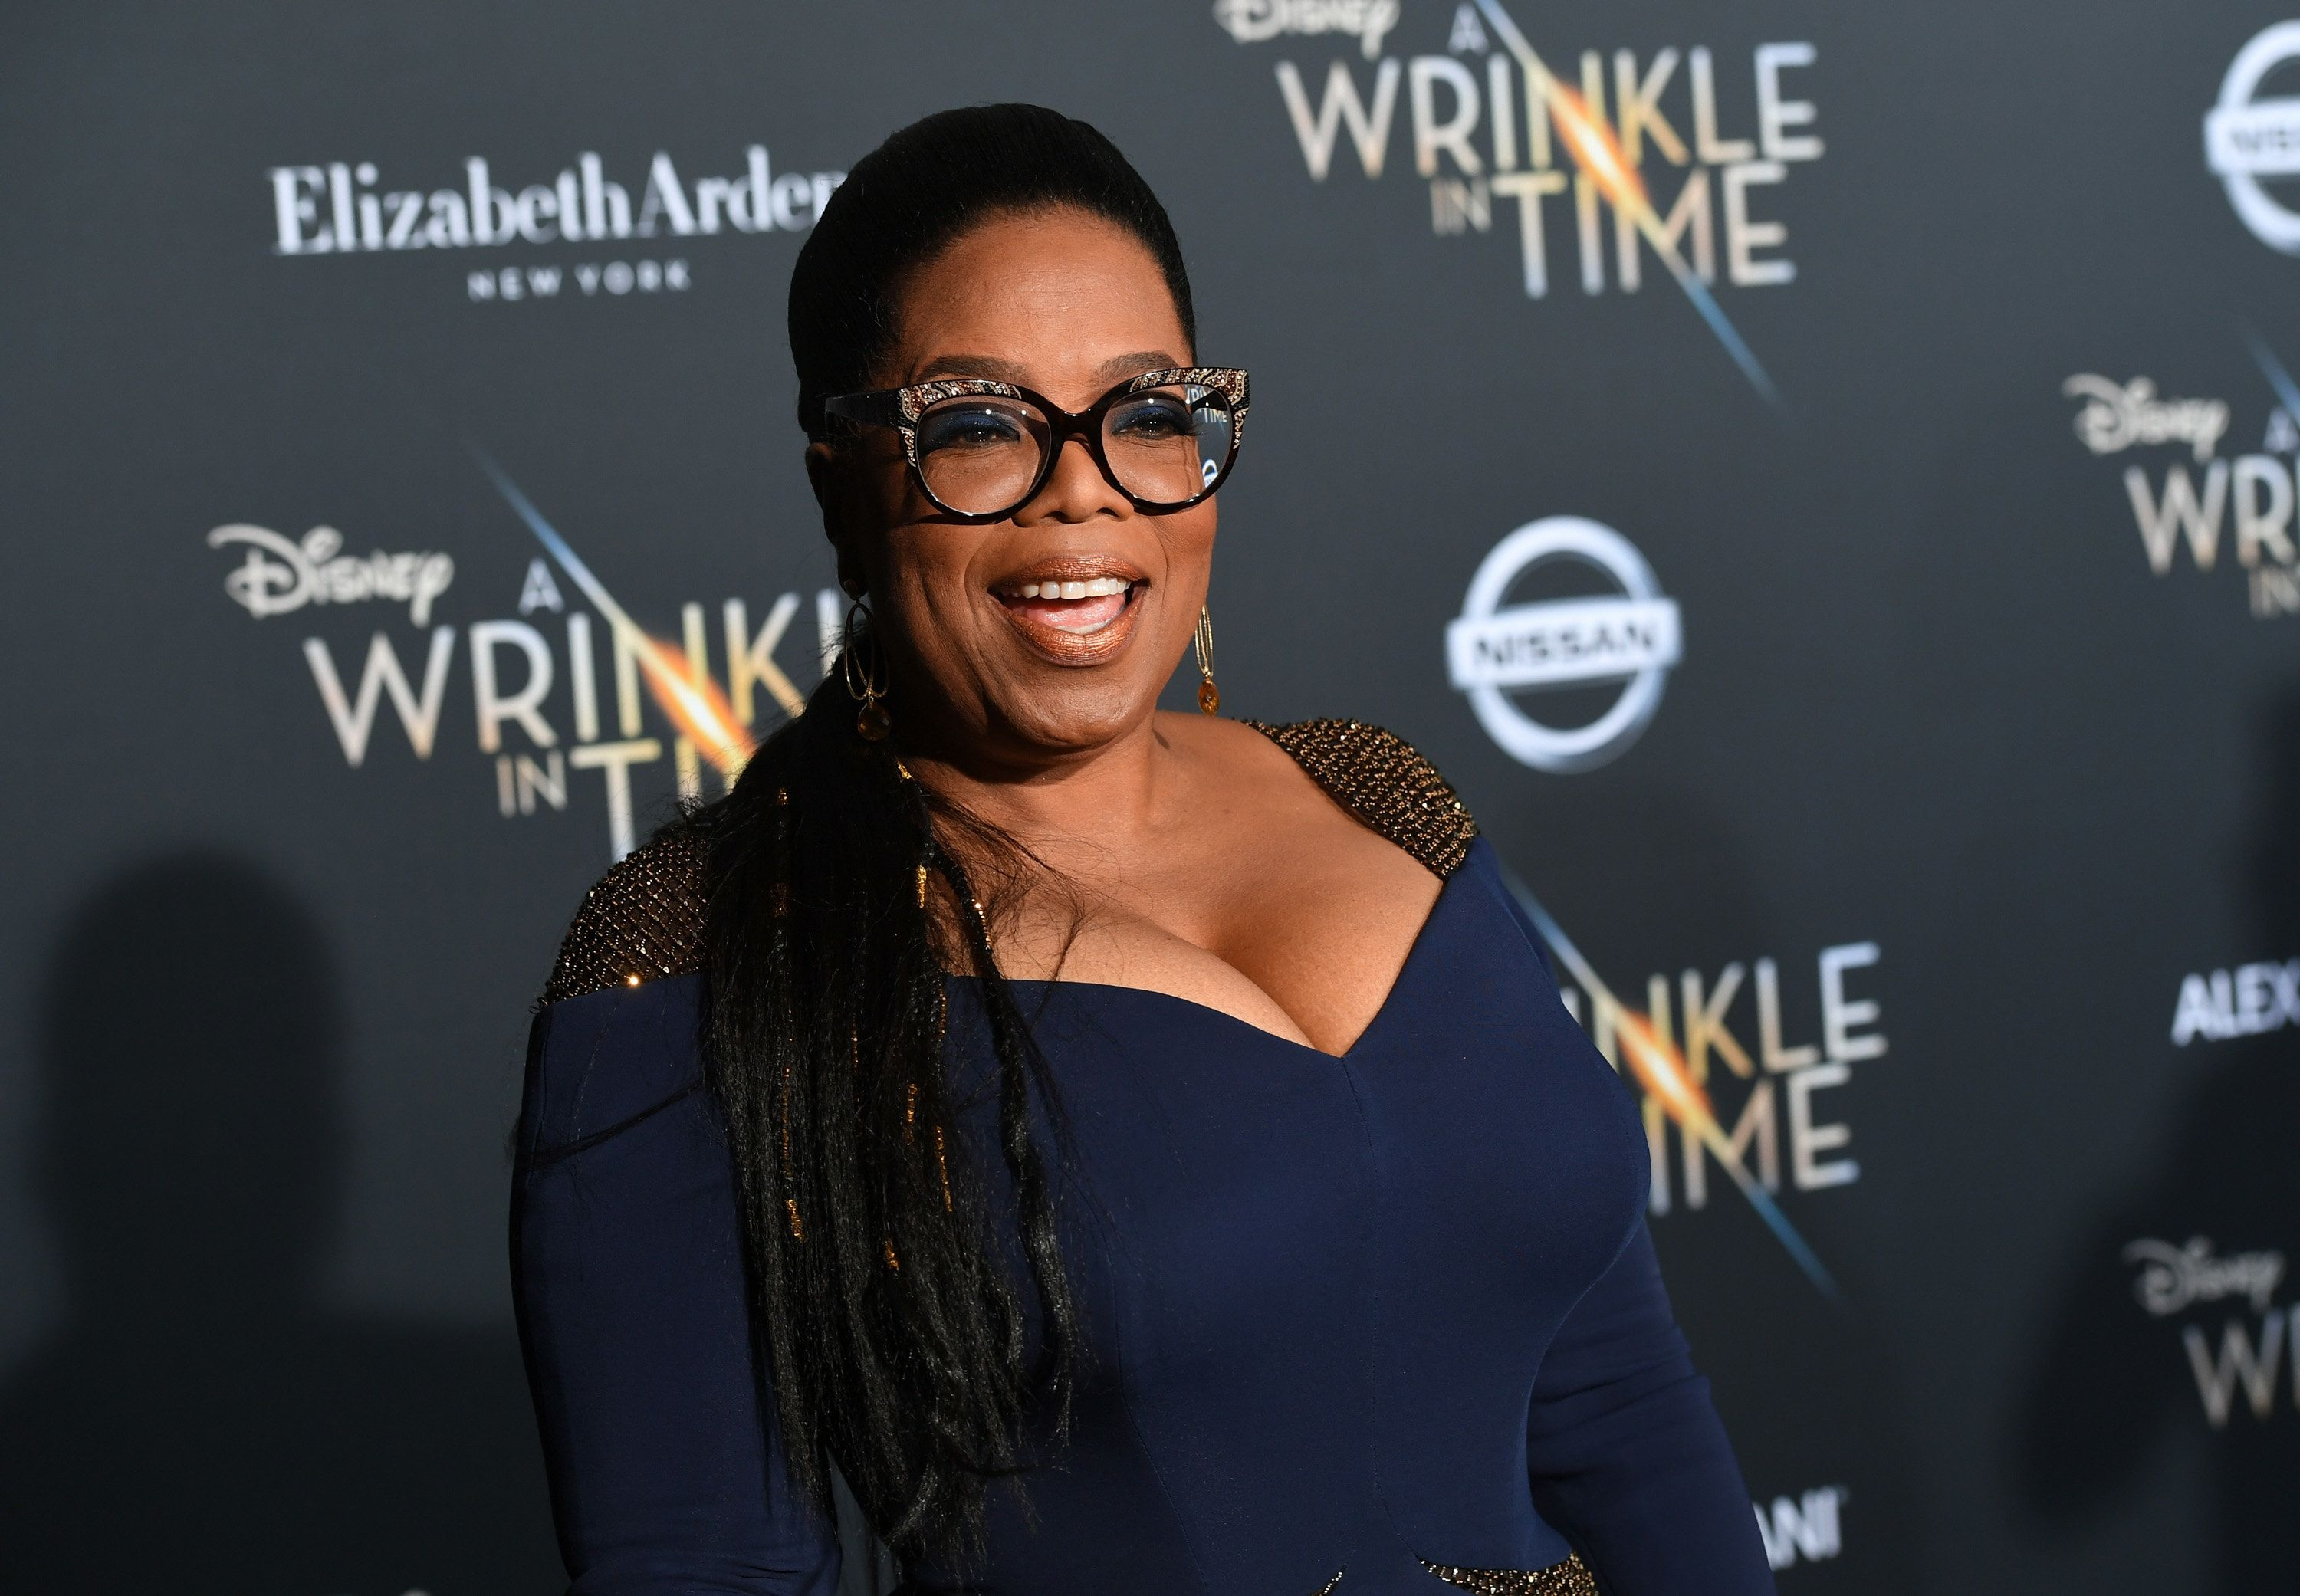 Oprah Winfrey waiting for 'God's sign' to run for President